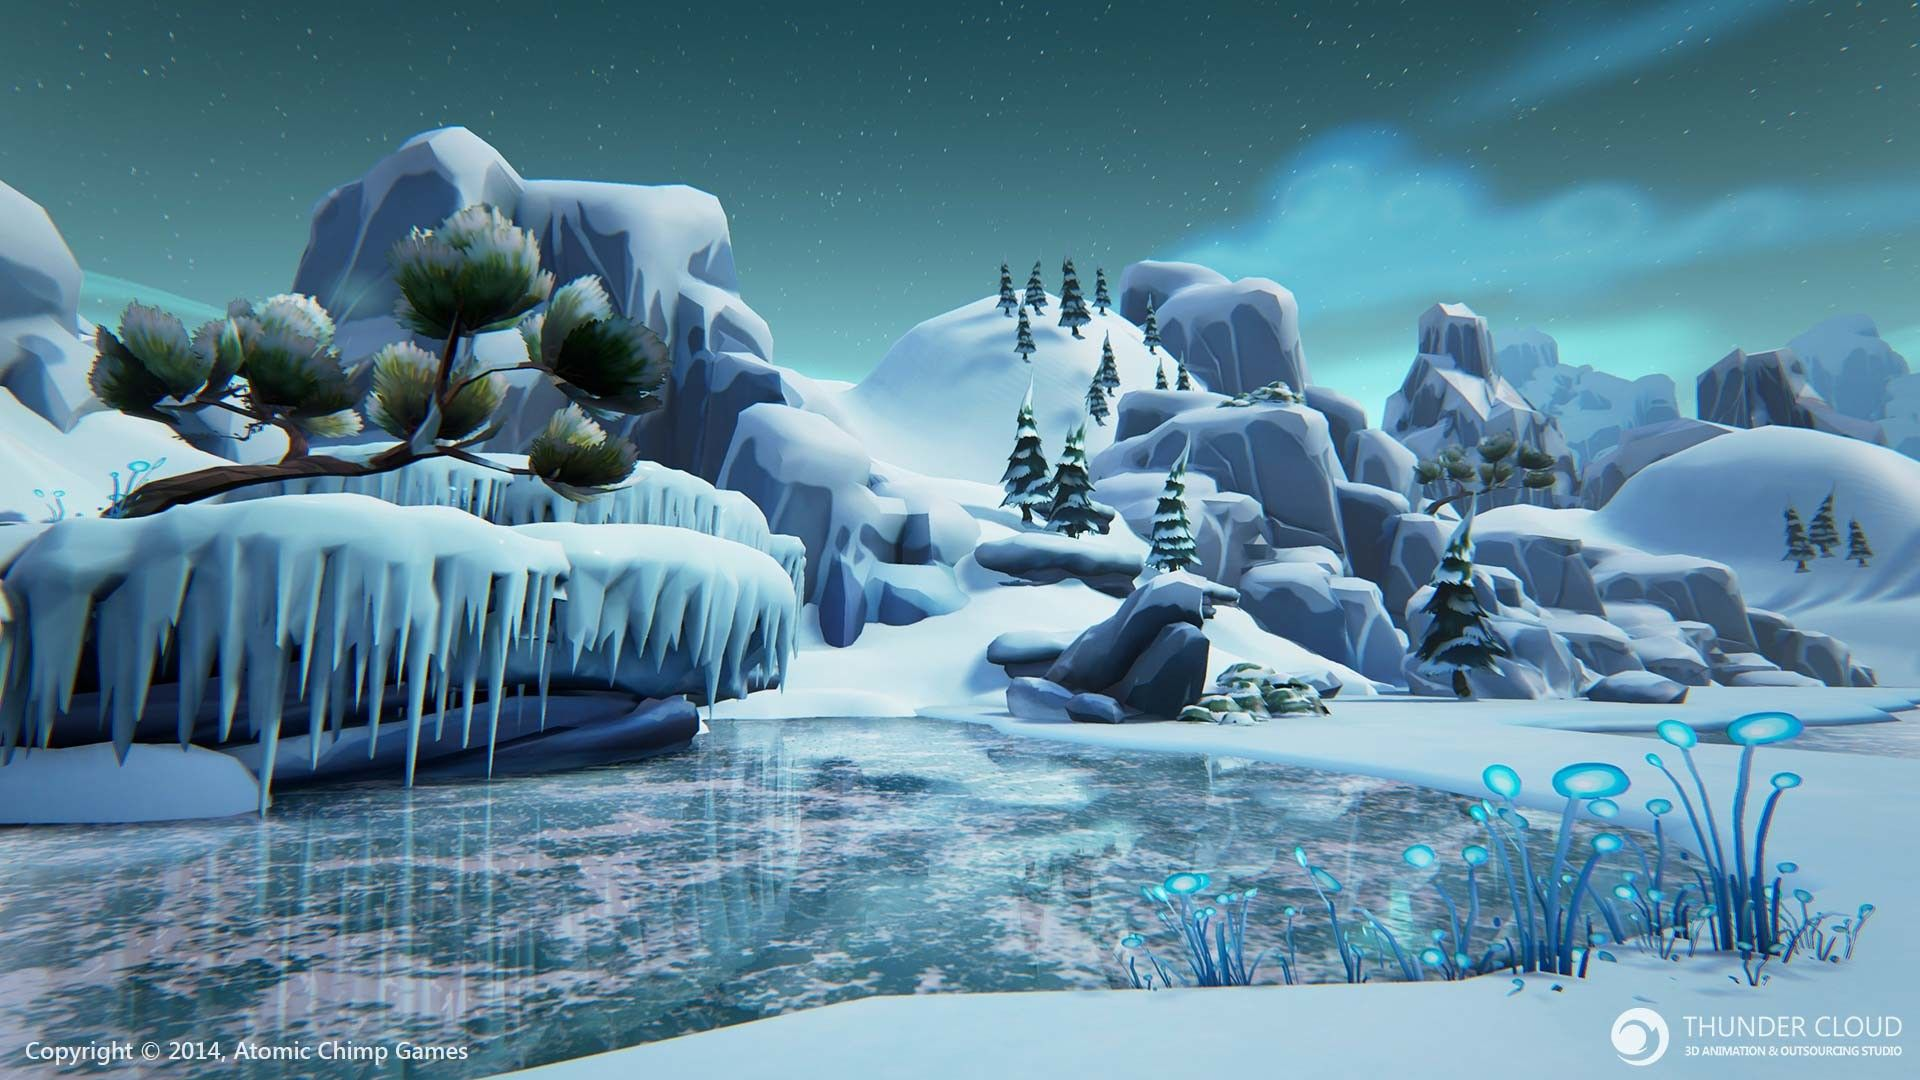 Winter Snow Thunder Cloud Game Art Environment Game Art Thundercloud